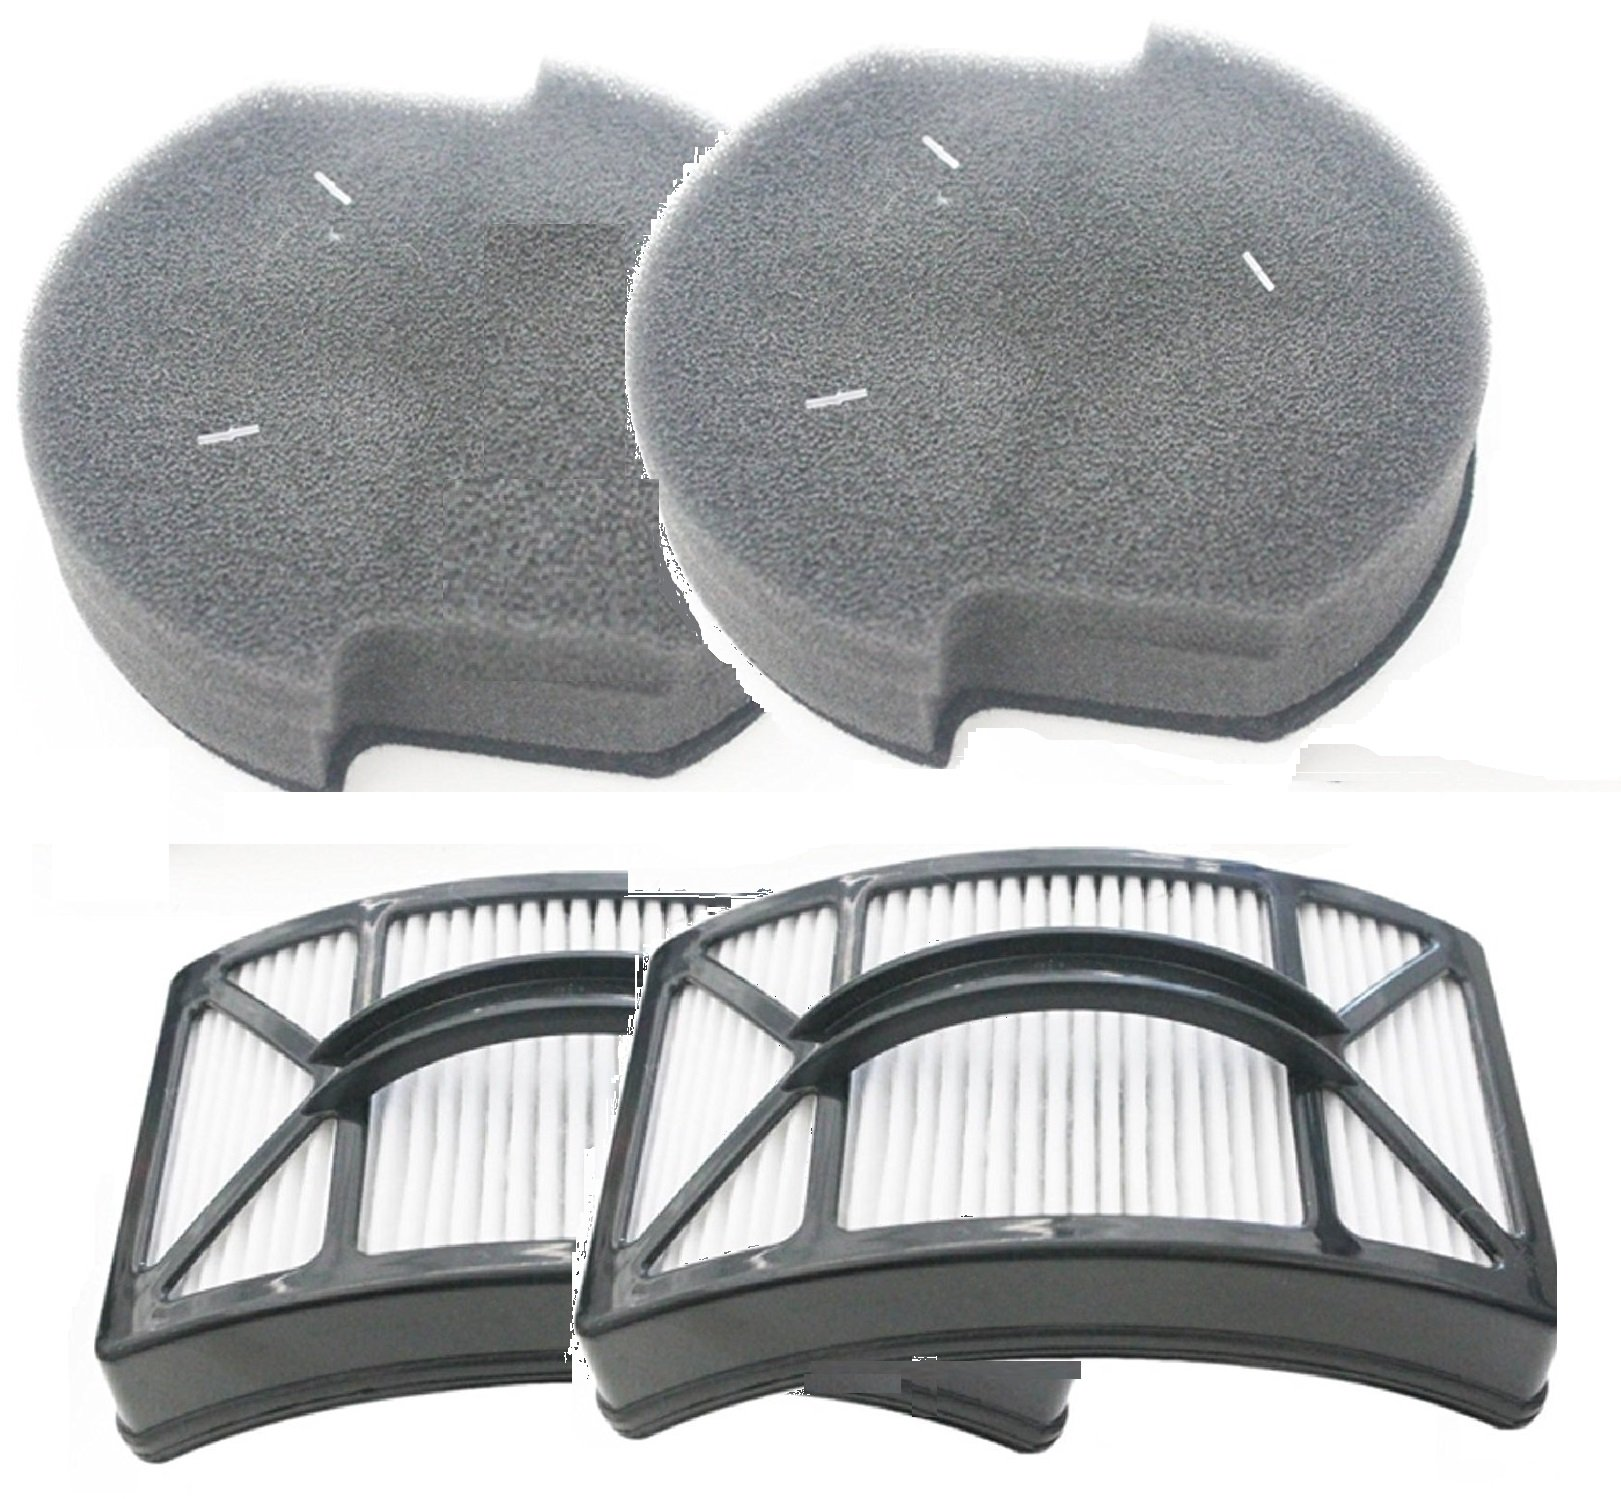 (2 Sets) Bissell Powerlifter Pet Filter Kits. Includes (2) Washable Foam Filters For 1604127, (2) Washable HEPA Filters For 1604130. 2 Sets of Filters